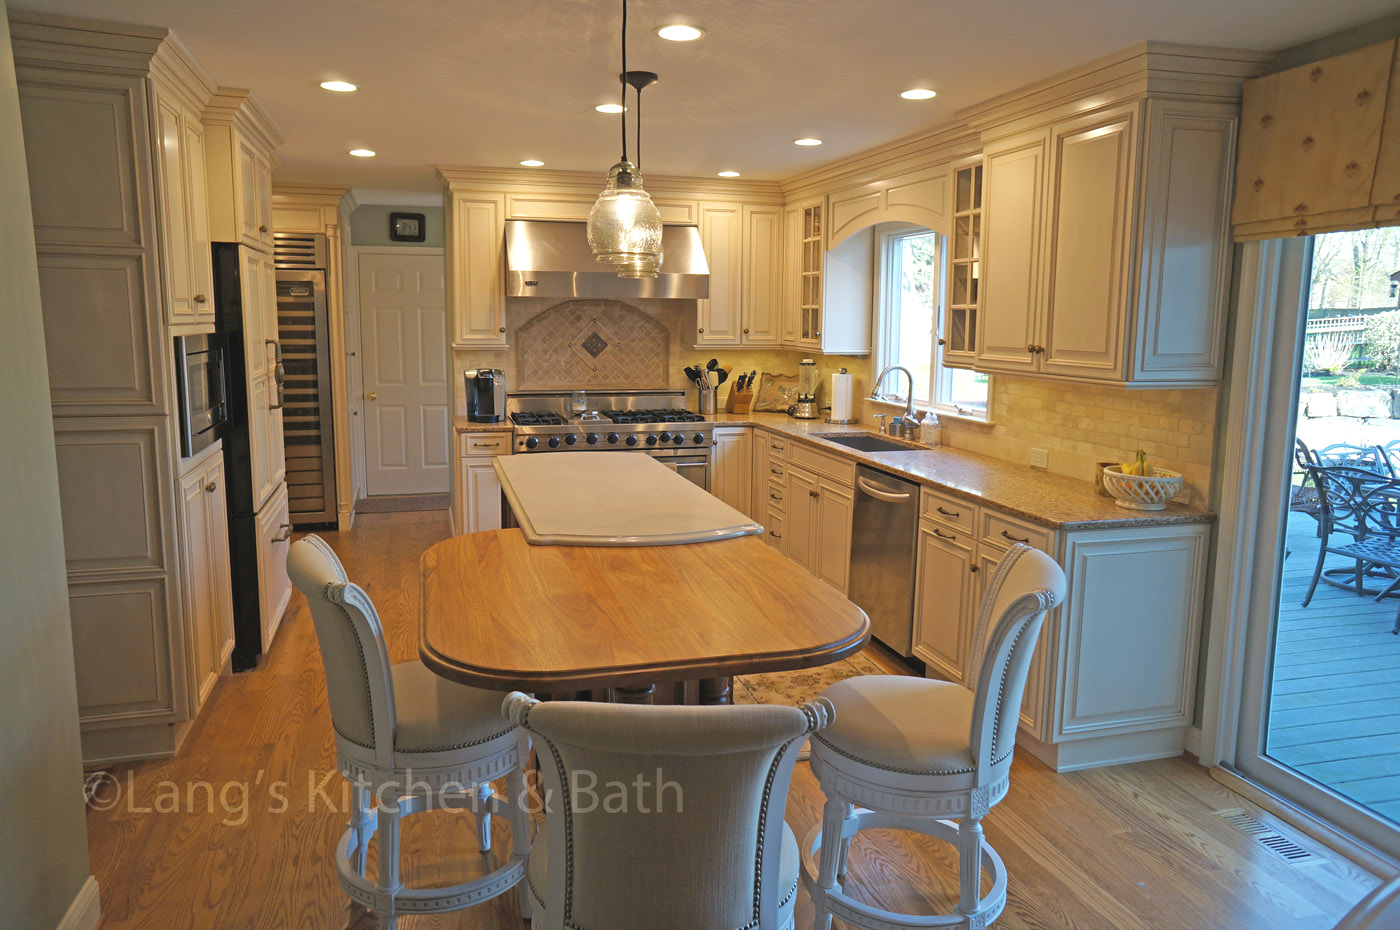 Kitchen island with tabletop and dining chairs